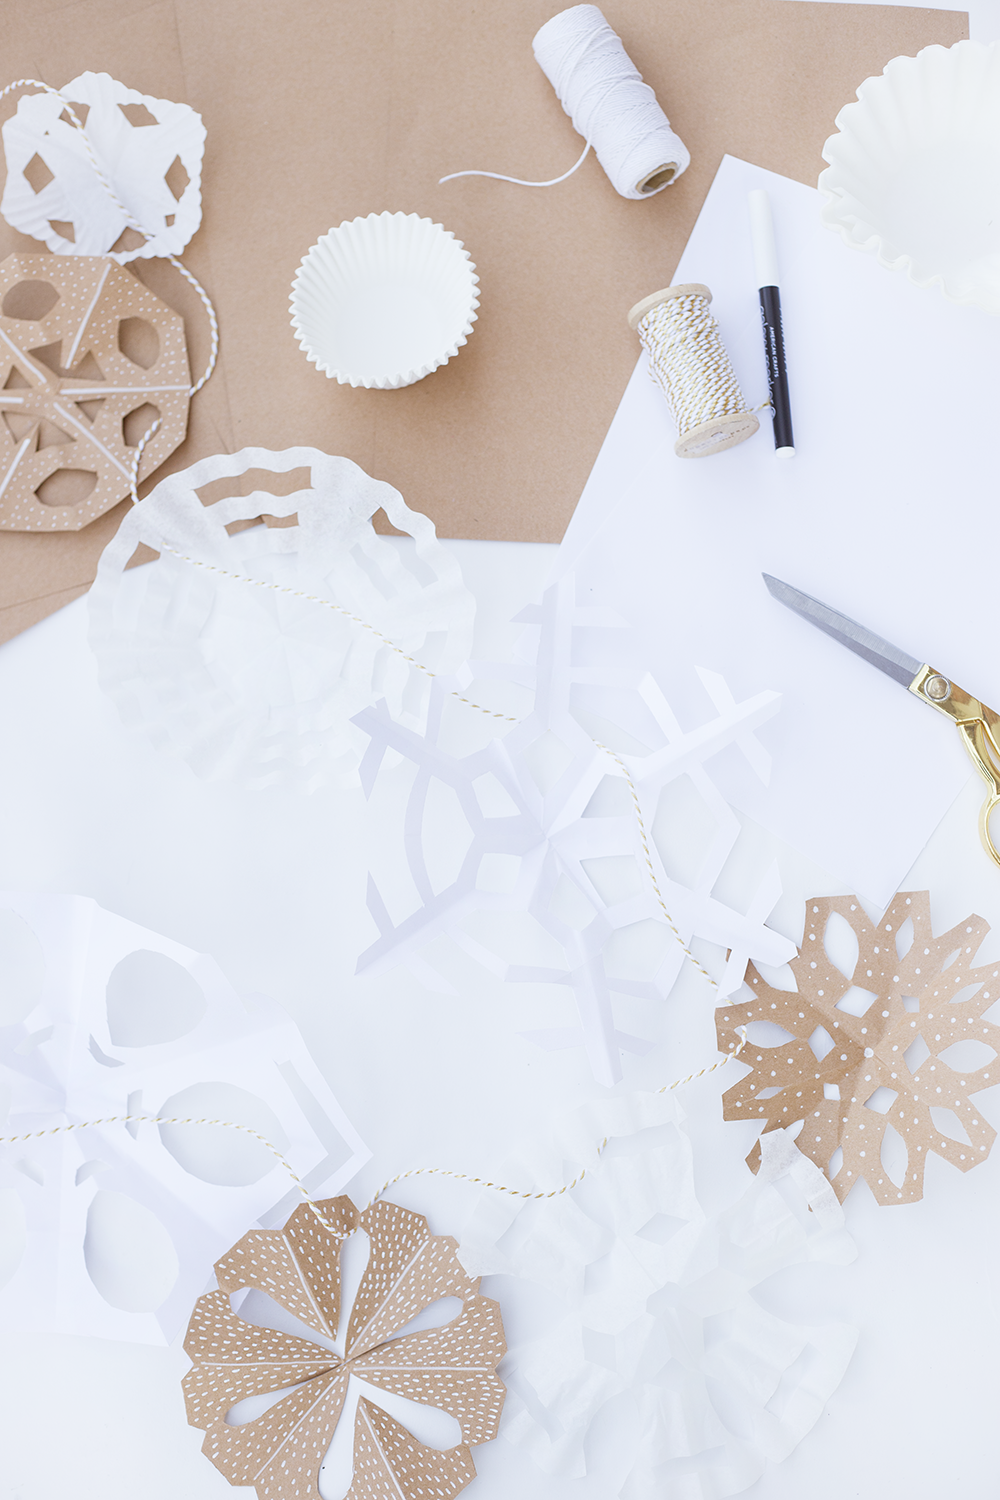 Make these modern paper snowflakes for your home this winter! Using different textures is a must for creating visual interest. Click through to read our easy DIY!